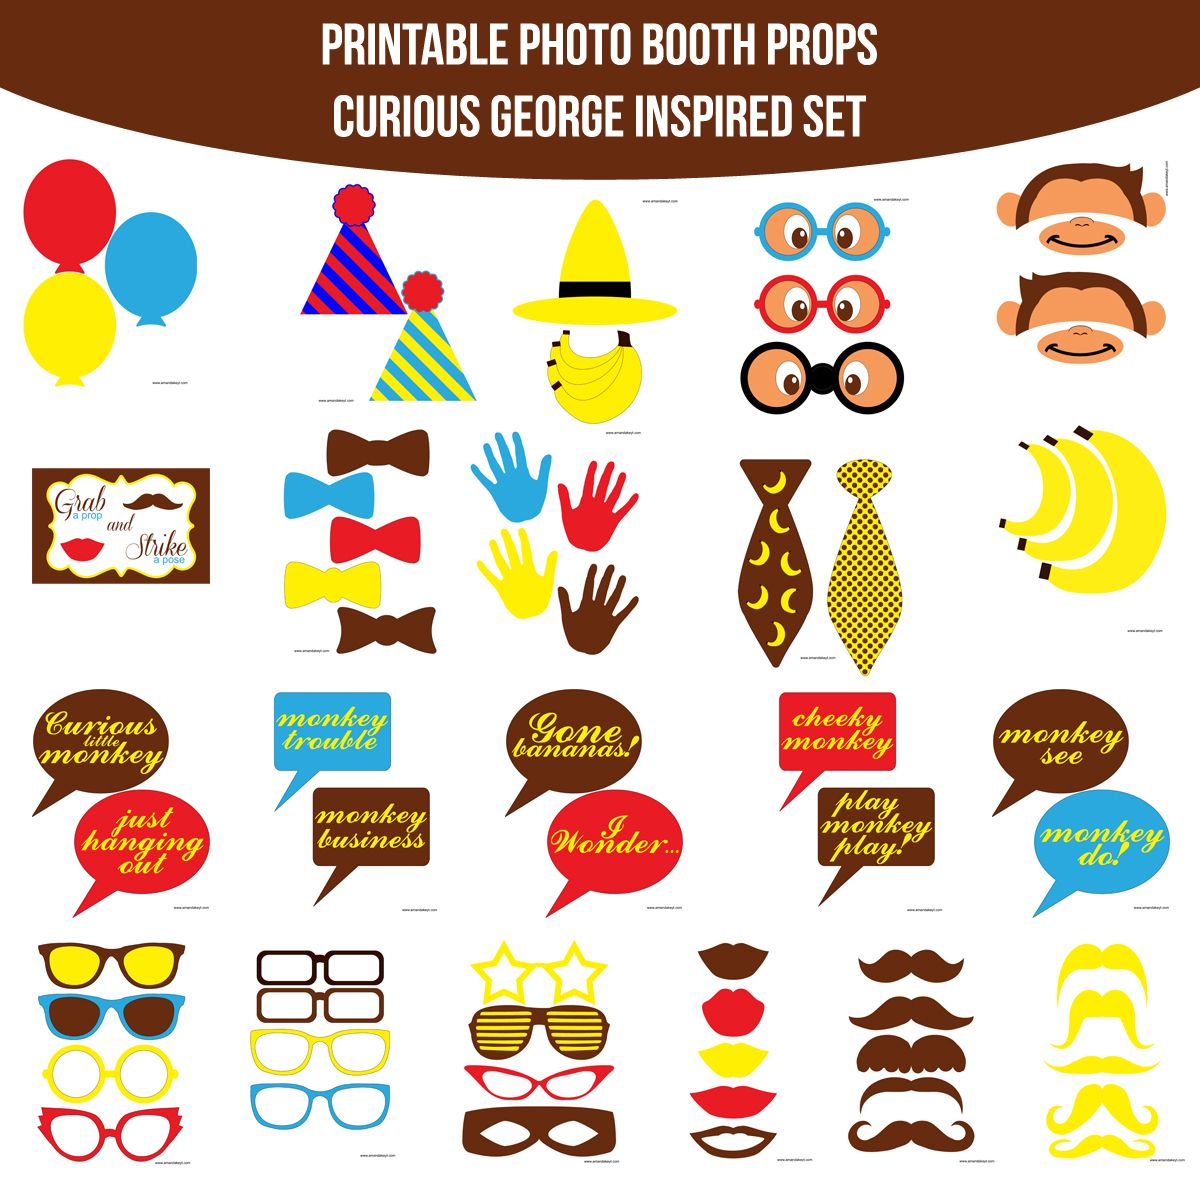 Instant Download Curious George Inspired Printable Photo Booth Prop Set  sc 1 st  Pinterest & Instant Download Curious George Inspired Printable Photo Booth Prop ...